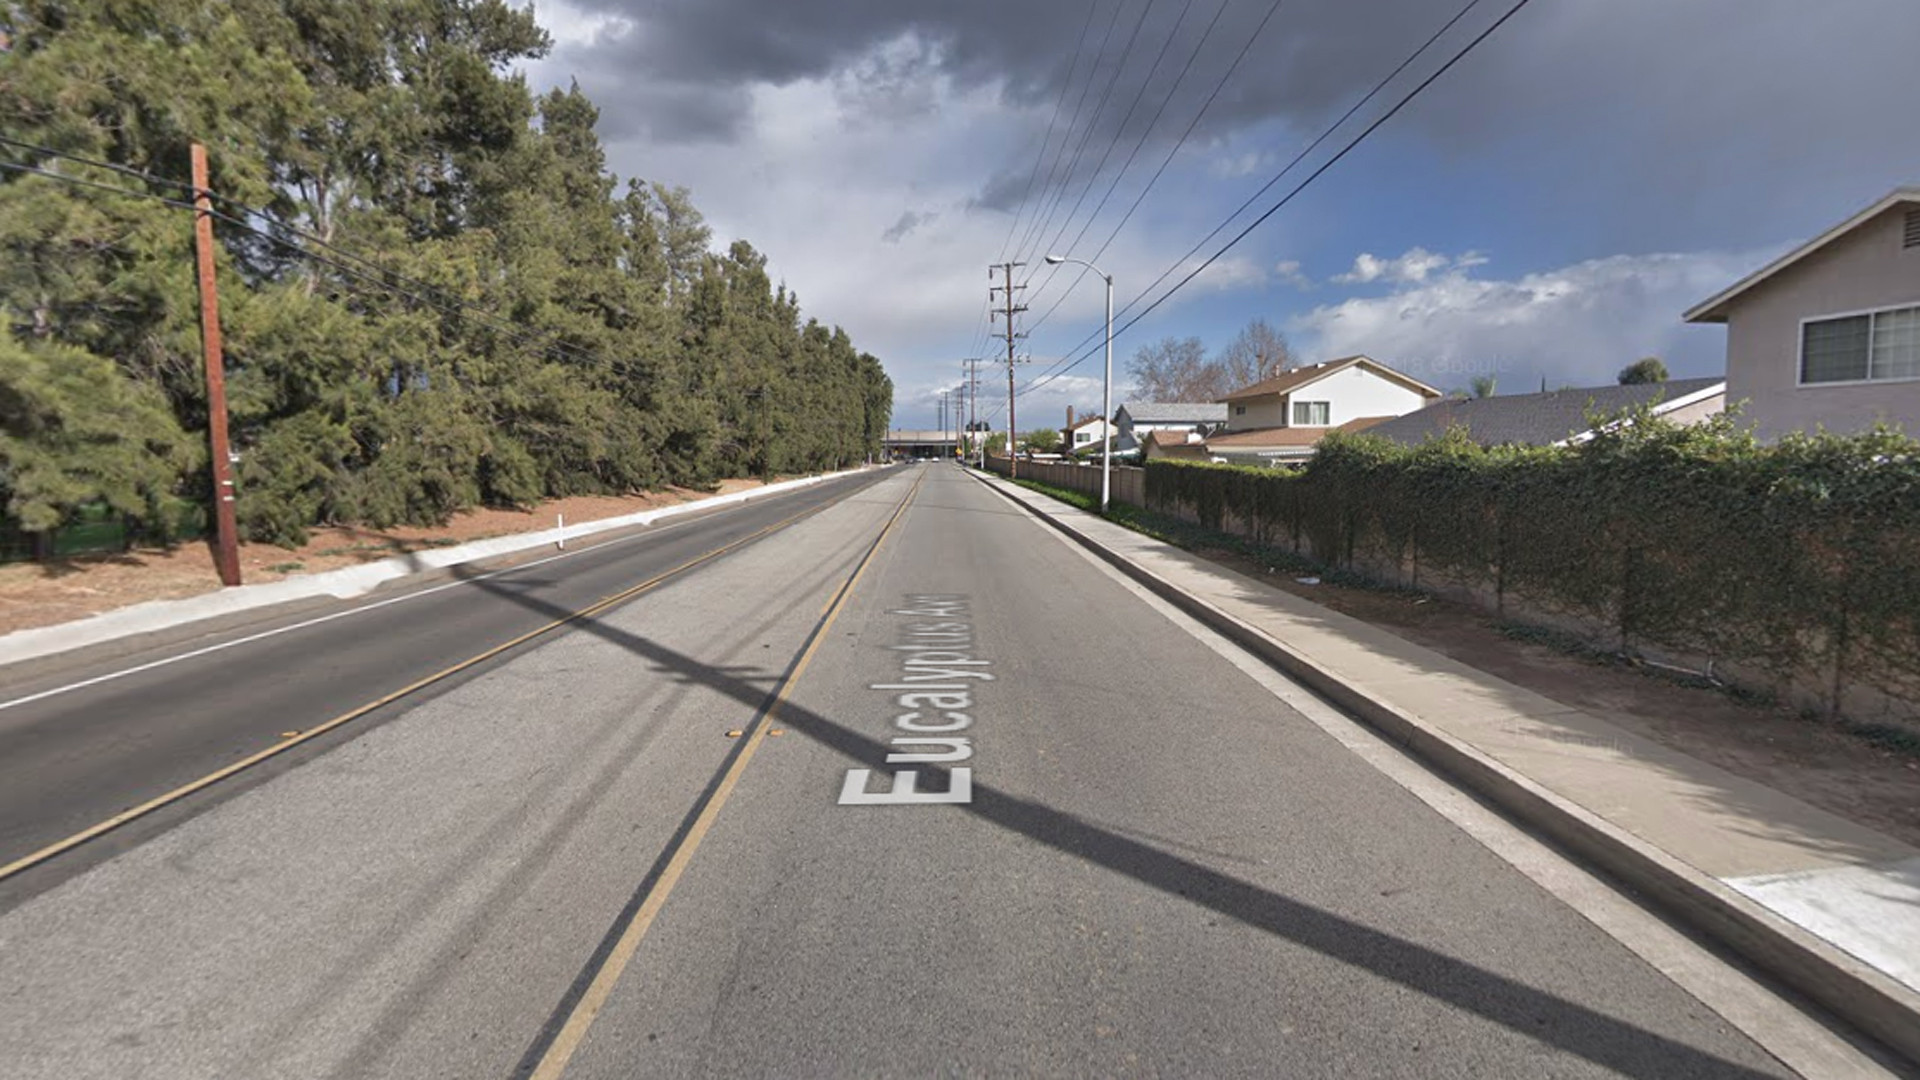 The 3800 block of Eucalyptus Avenue in Chino Hills, as pictured in a Google Street View image in February of 2018.